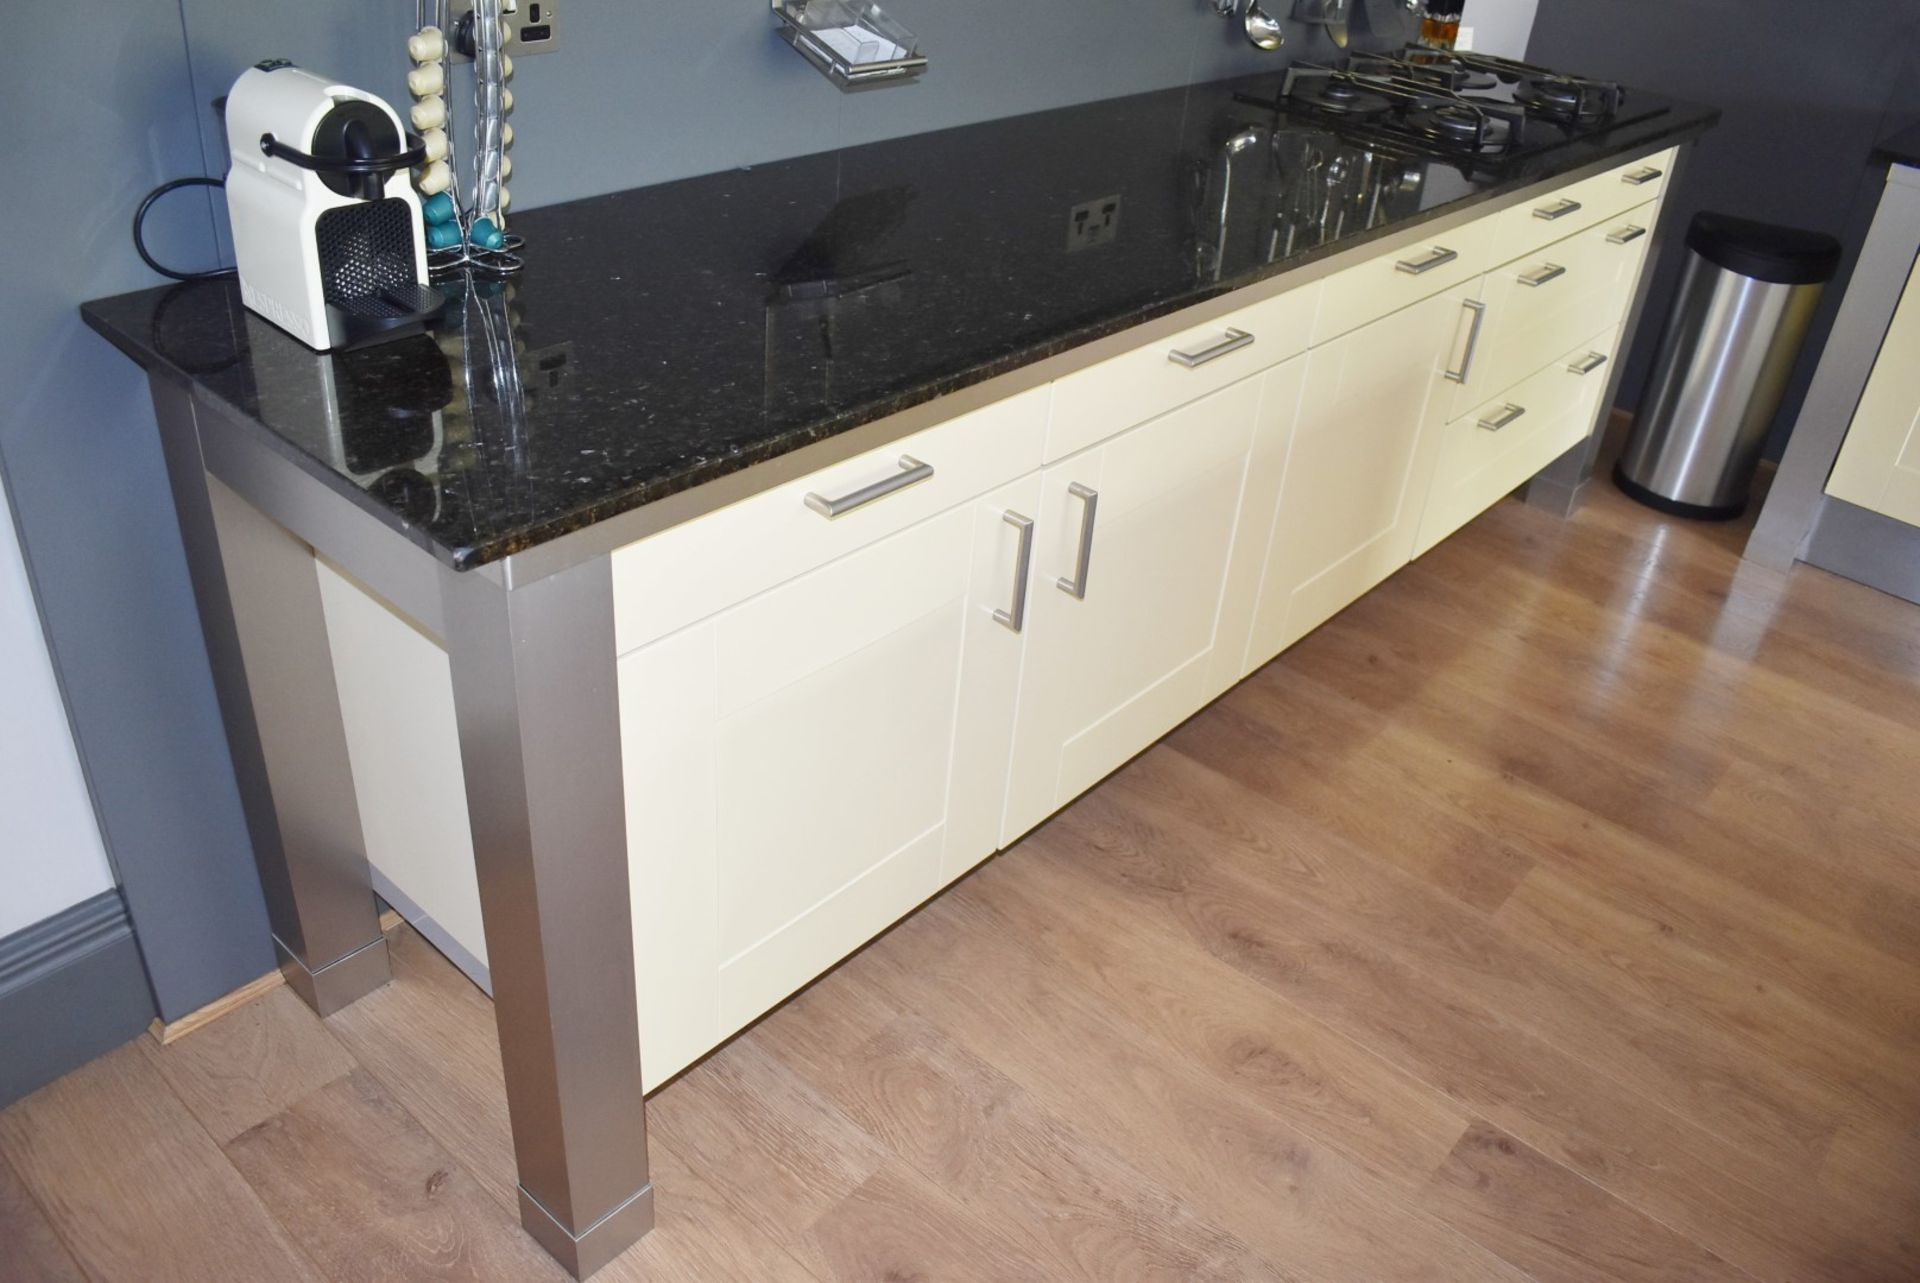 1 x SieMatic Contemporary Fitted Kitchen With Appliances - Features Shaker Style Doors, Central - Image 45 of 96